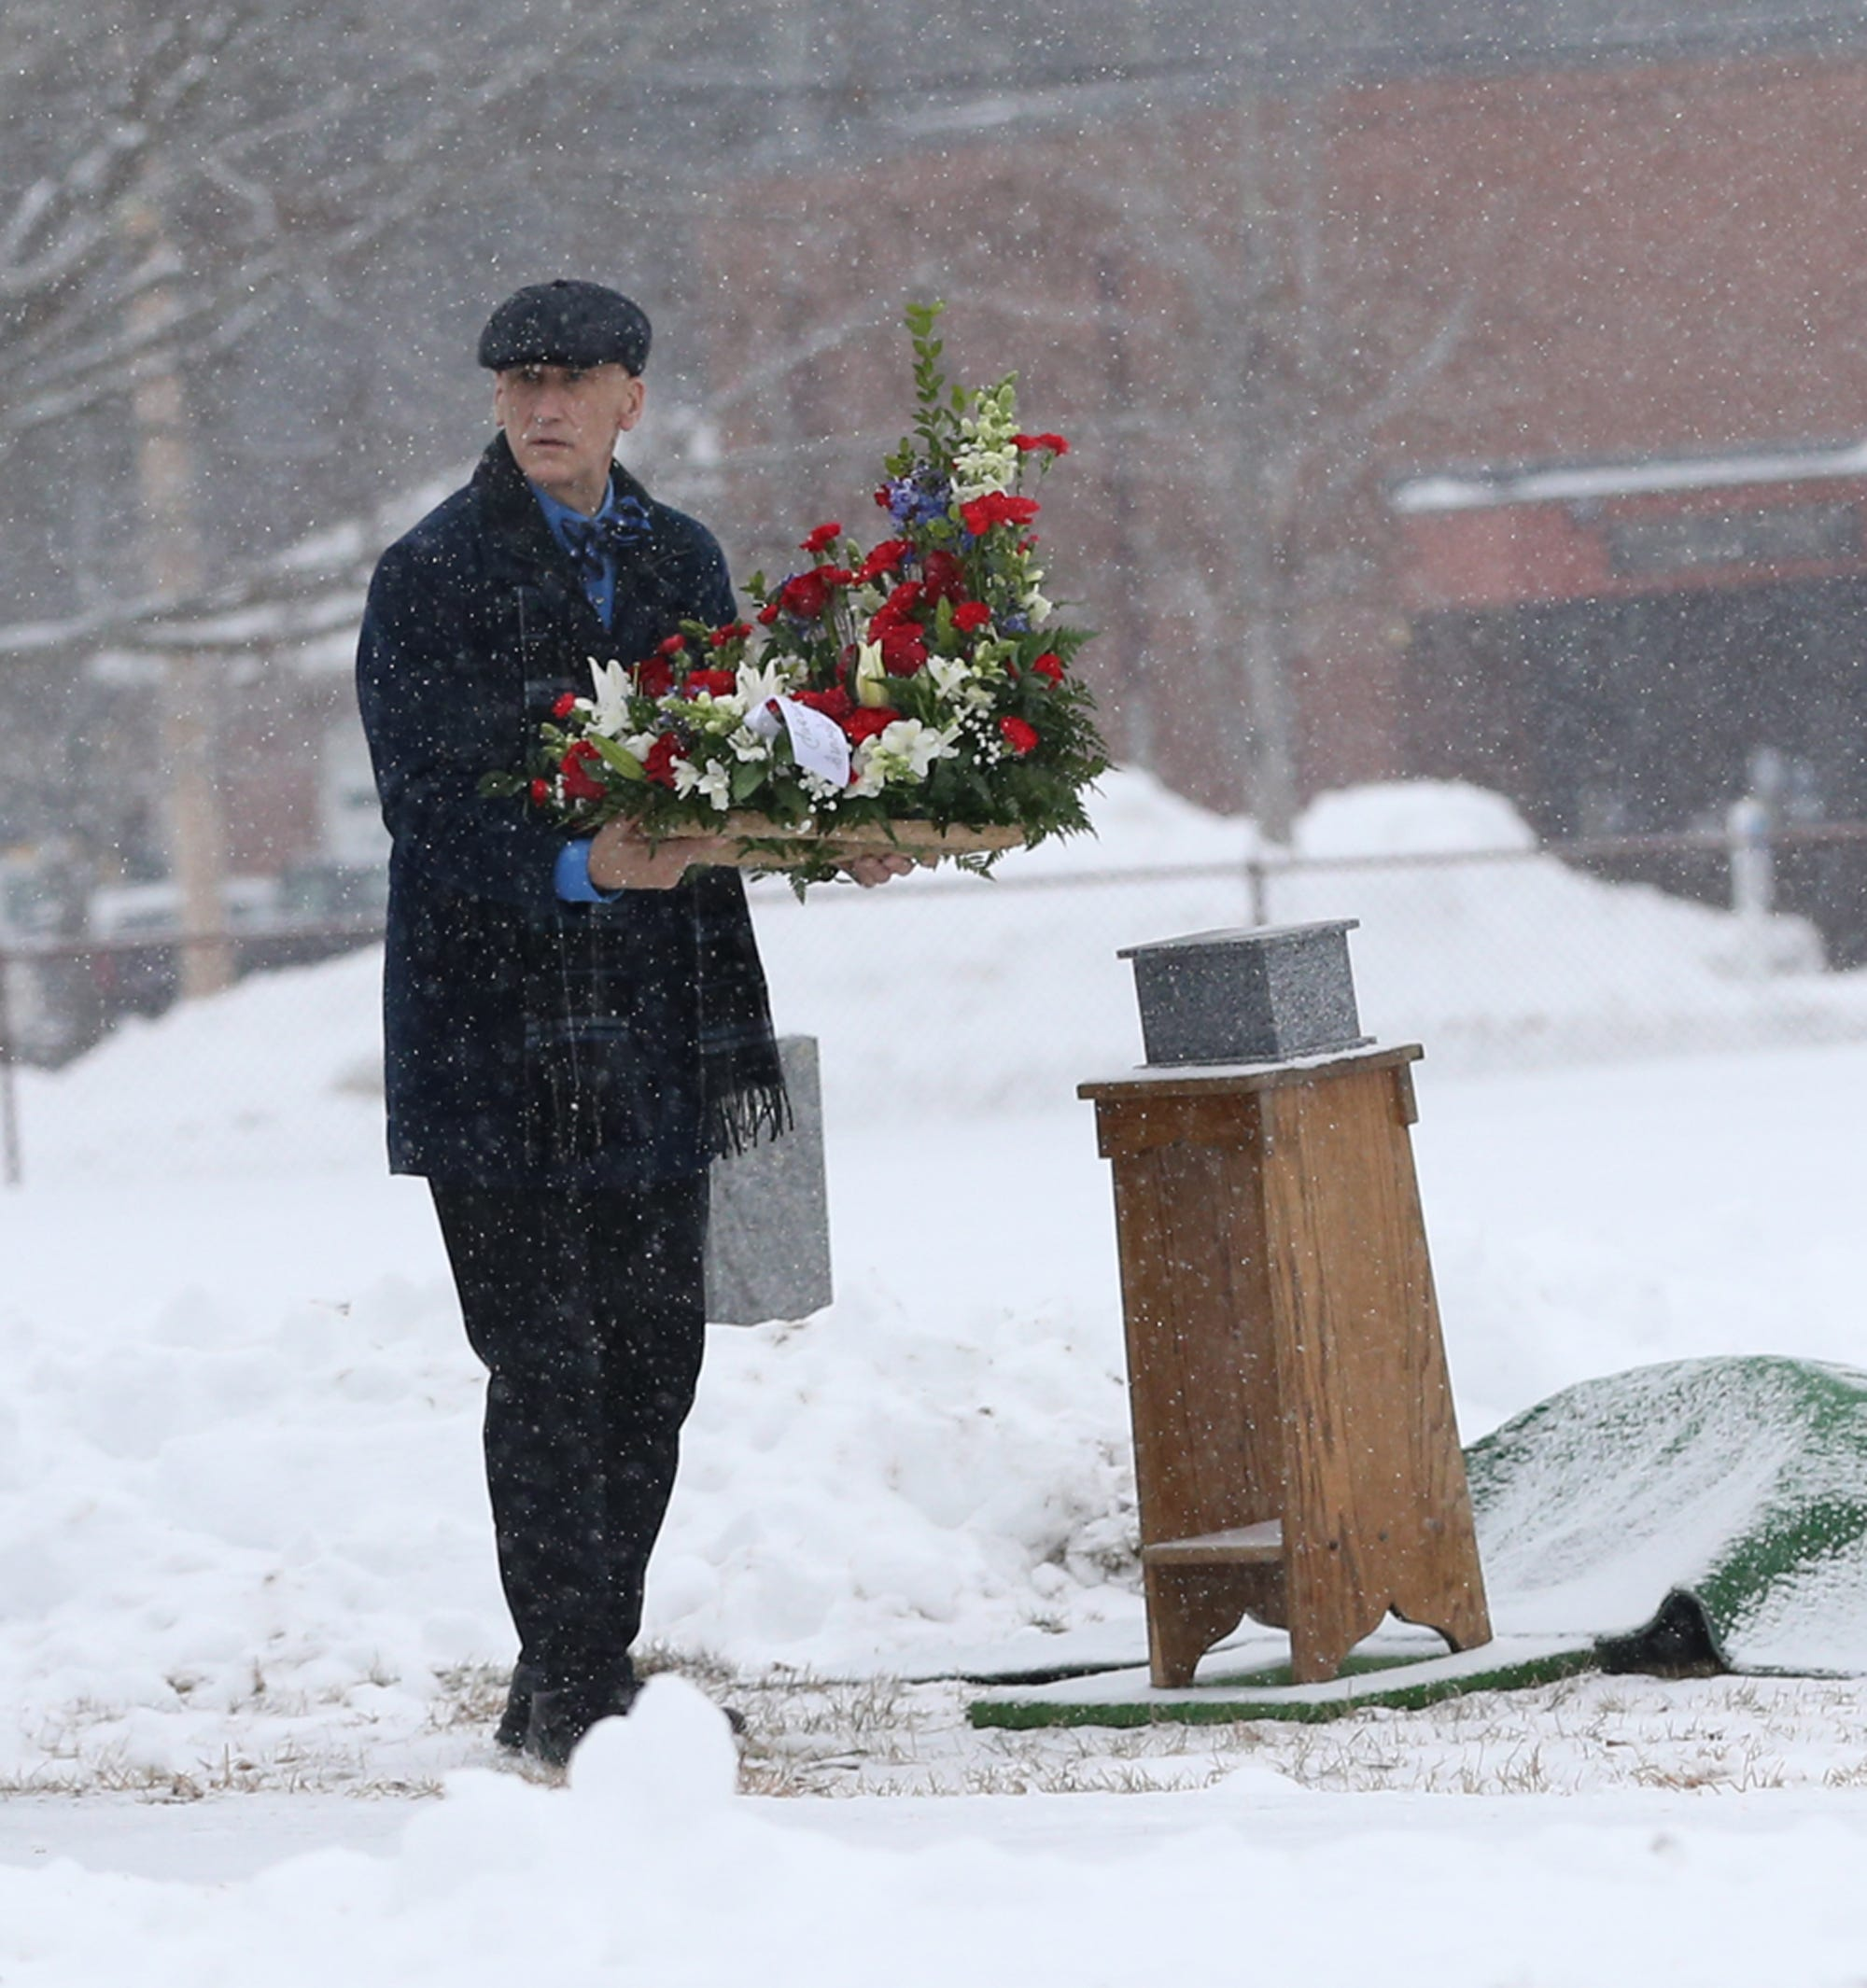 Funeral home director Jeff Pelkey puts a flower arrangement at the base of a podium resting ashes of an elderly gentleman as snow falls gently at Holy Trinity Cemetery in Somersworth, NH.